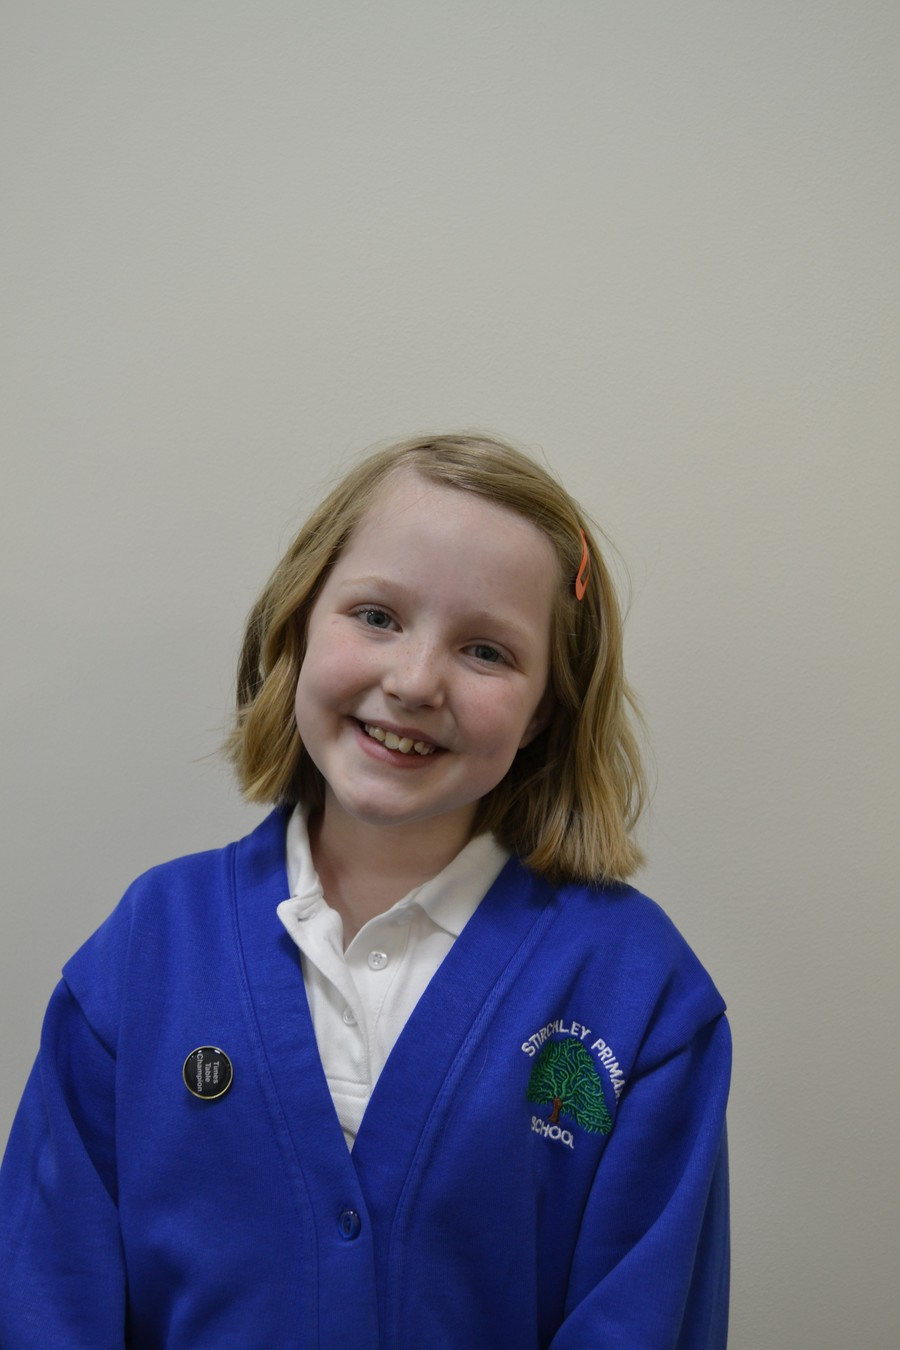 Well done Poppy-Jo!